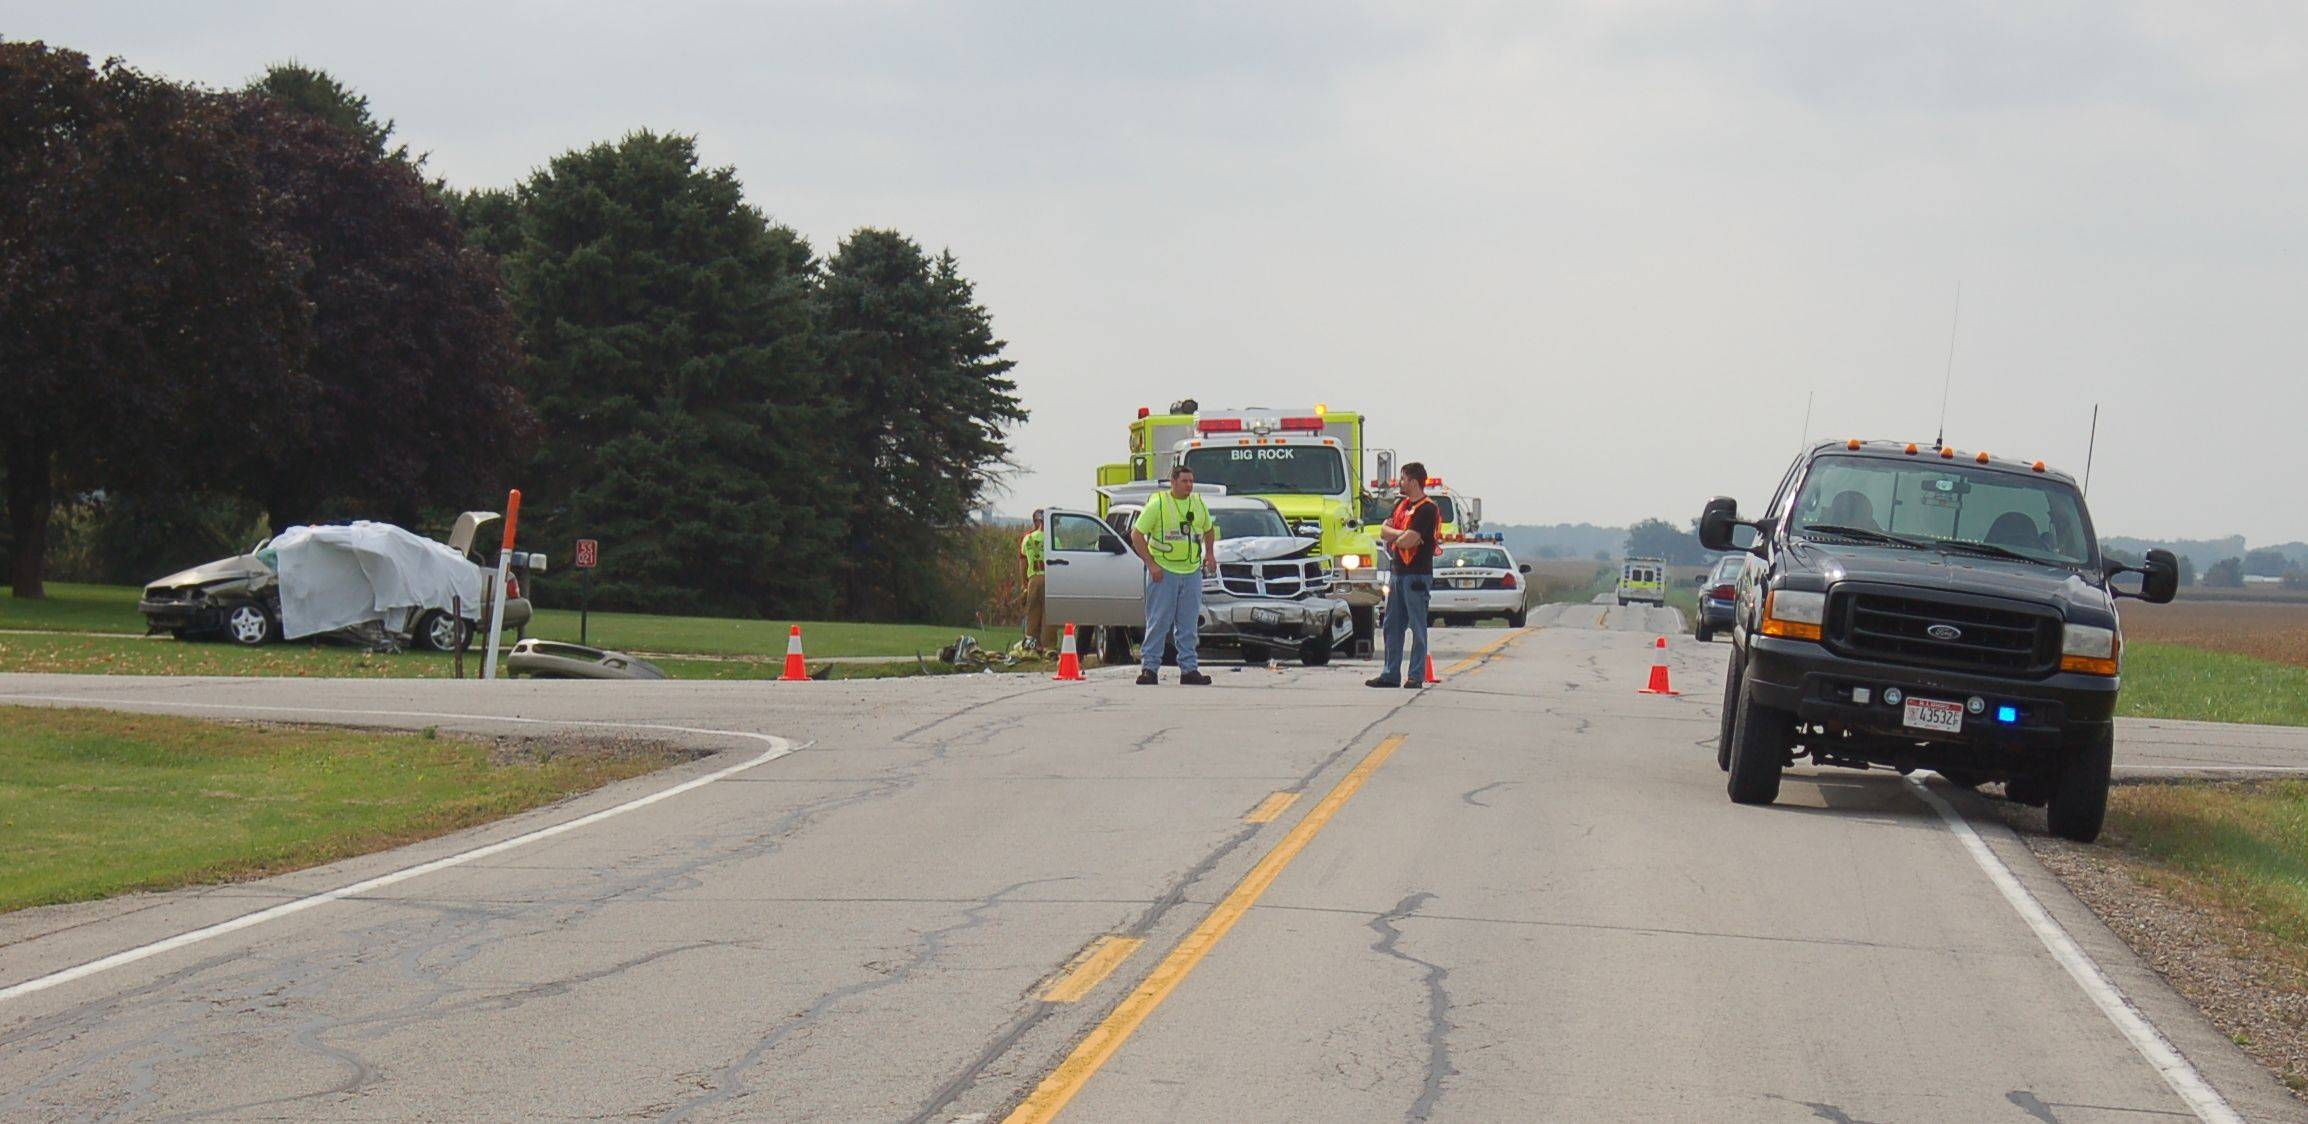 Authorities investigate a crash in Big Rock Township in September 2008. Distracted driving was a likely cause, officials said.